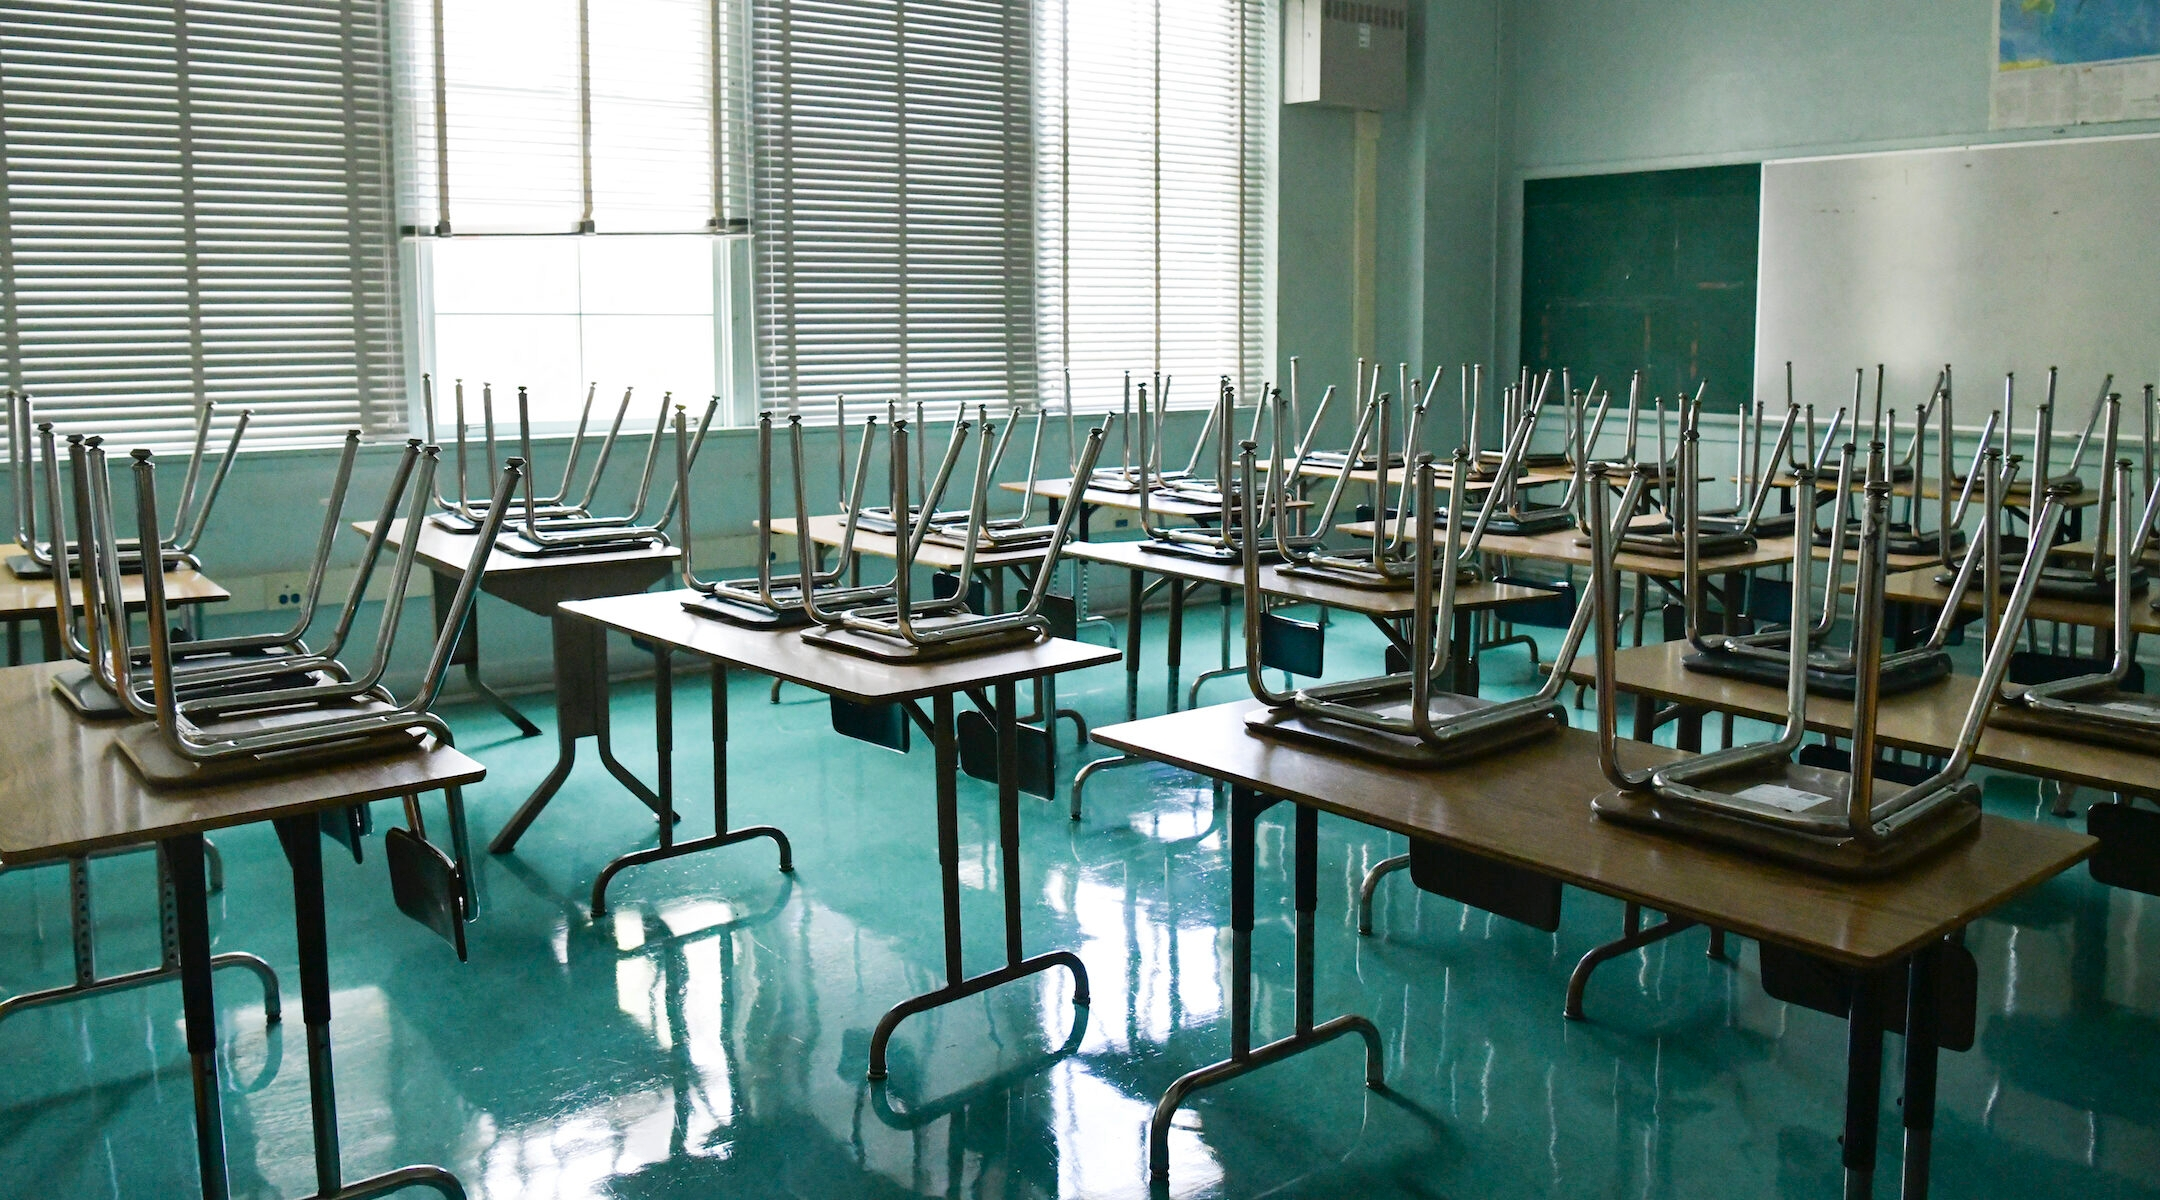 An empty classroom in Hollywood, California, seen in August 2020. The ethnic studies curriculum was an attempt to reflect the experiences and perspectives of California's minority communities in its education system. (Rodin Eckenroth/Getty Images)